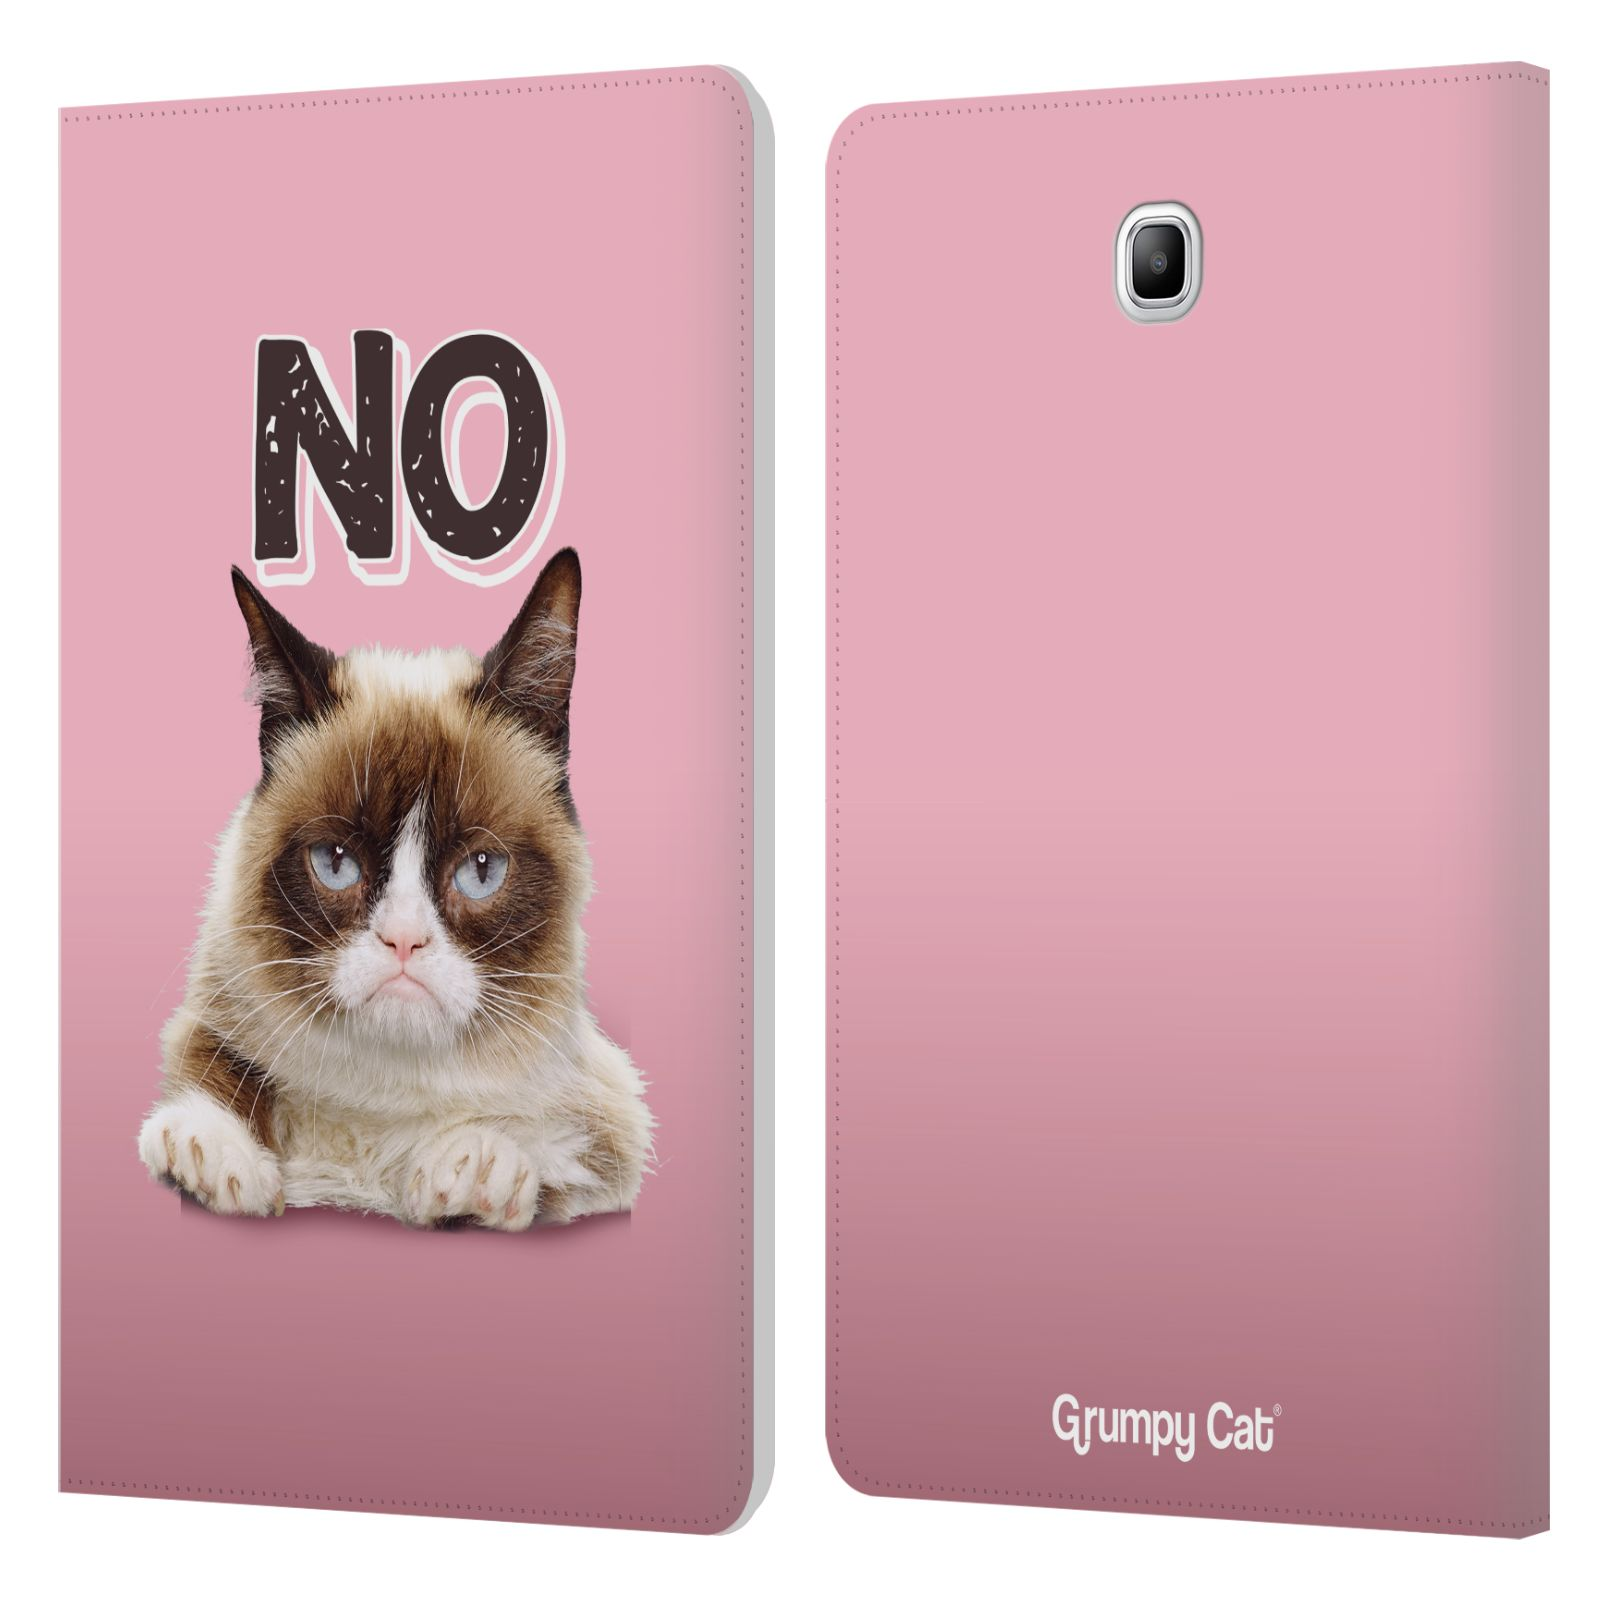 OFFICIAL GRUMPY CAT QUOTES LEATHER BOOK WALLET CASE FOR ...